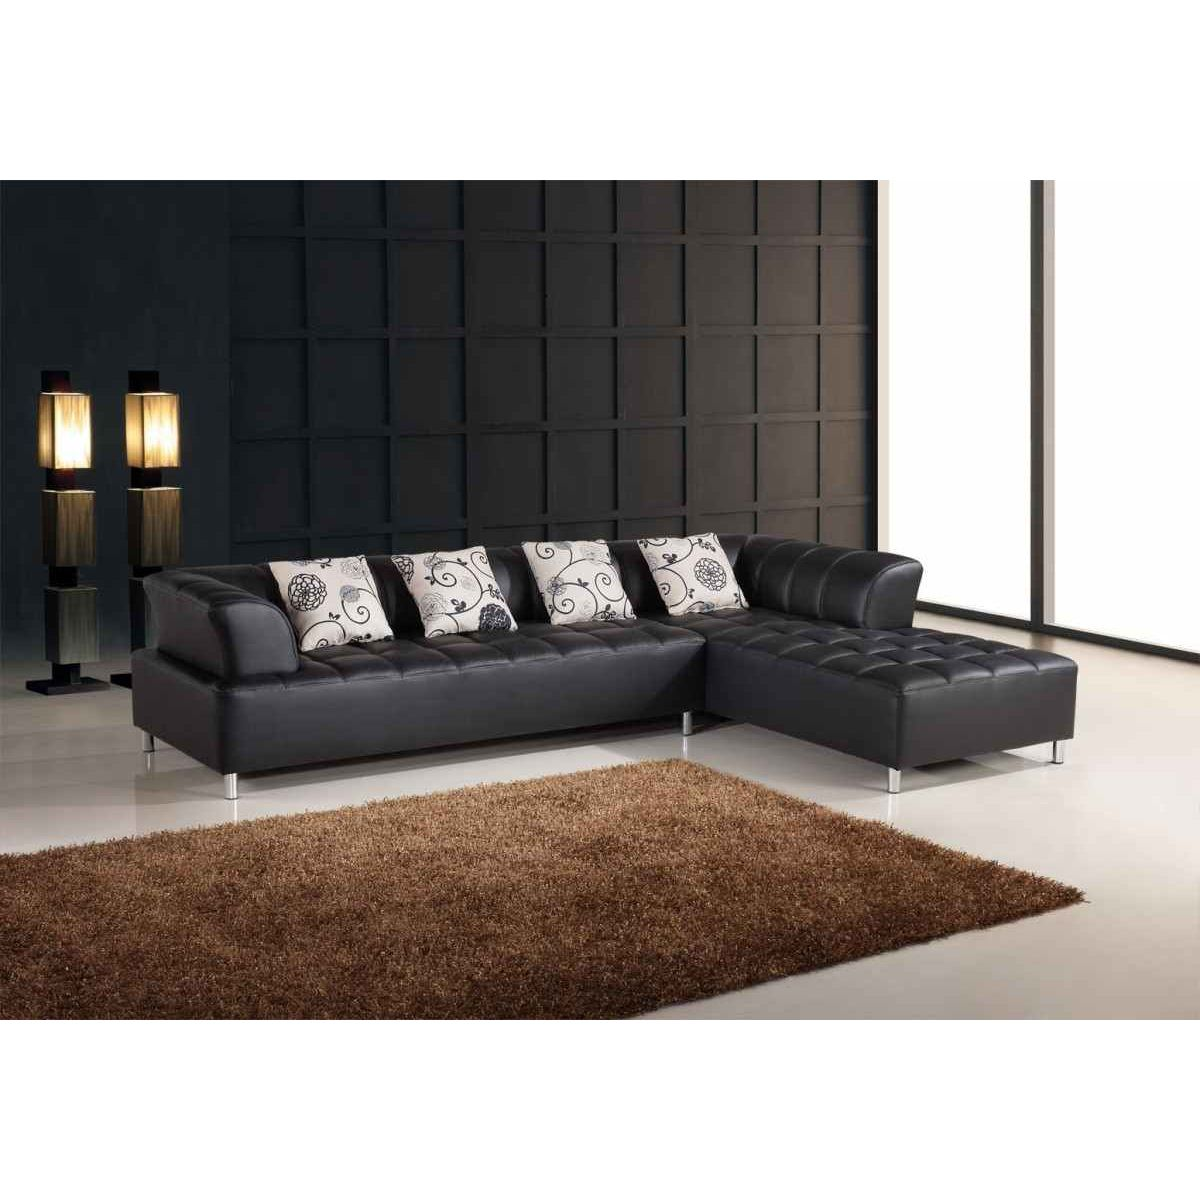 deco in paris canape d angle capitonne noir verone can. Black Bedroom Furniture Sets. Home Design Ideas